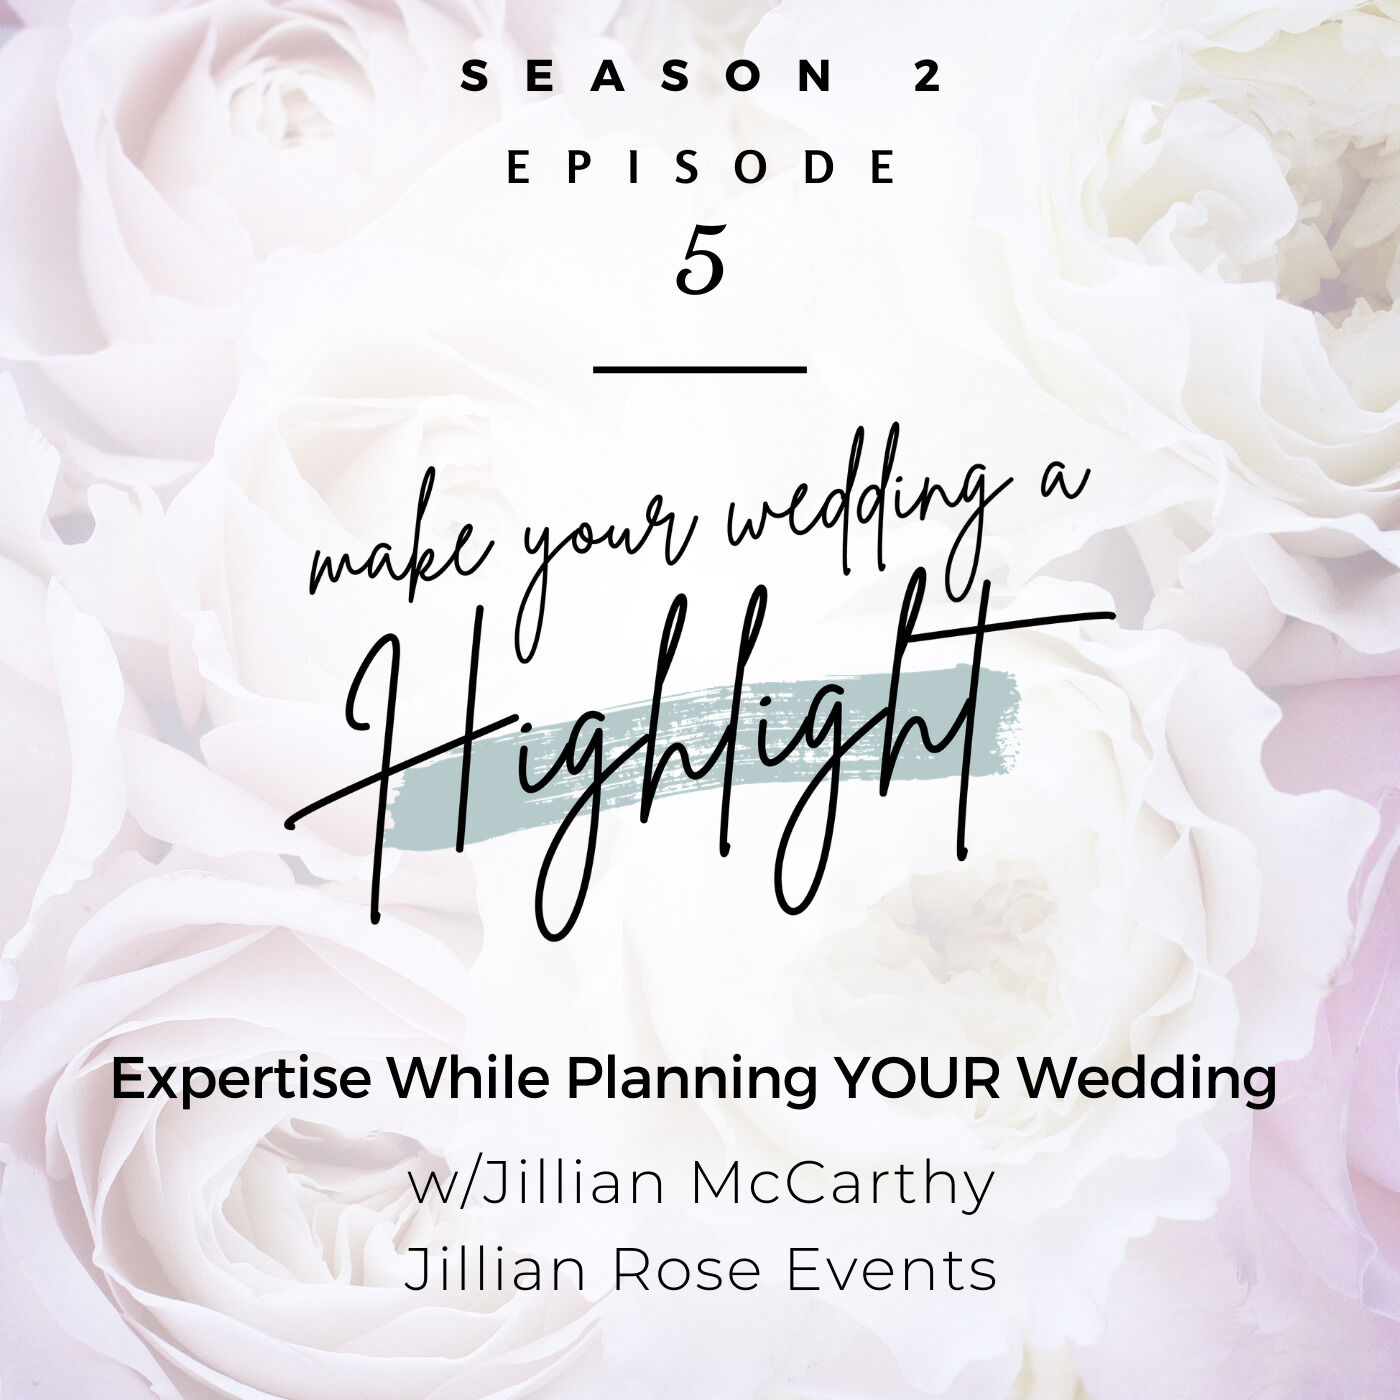 Expertise While Planning YOUR Wedding